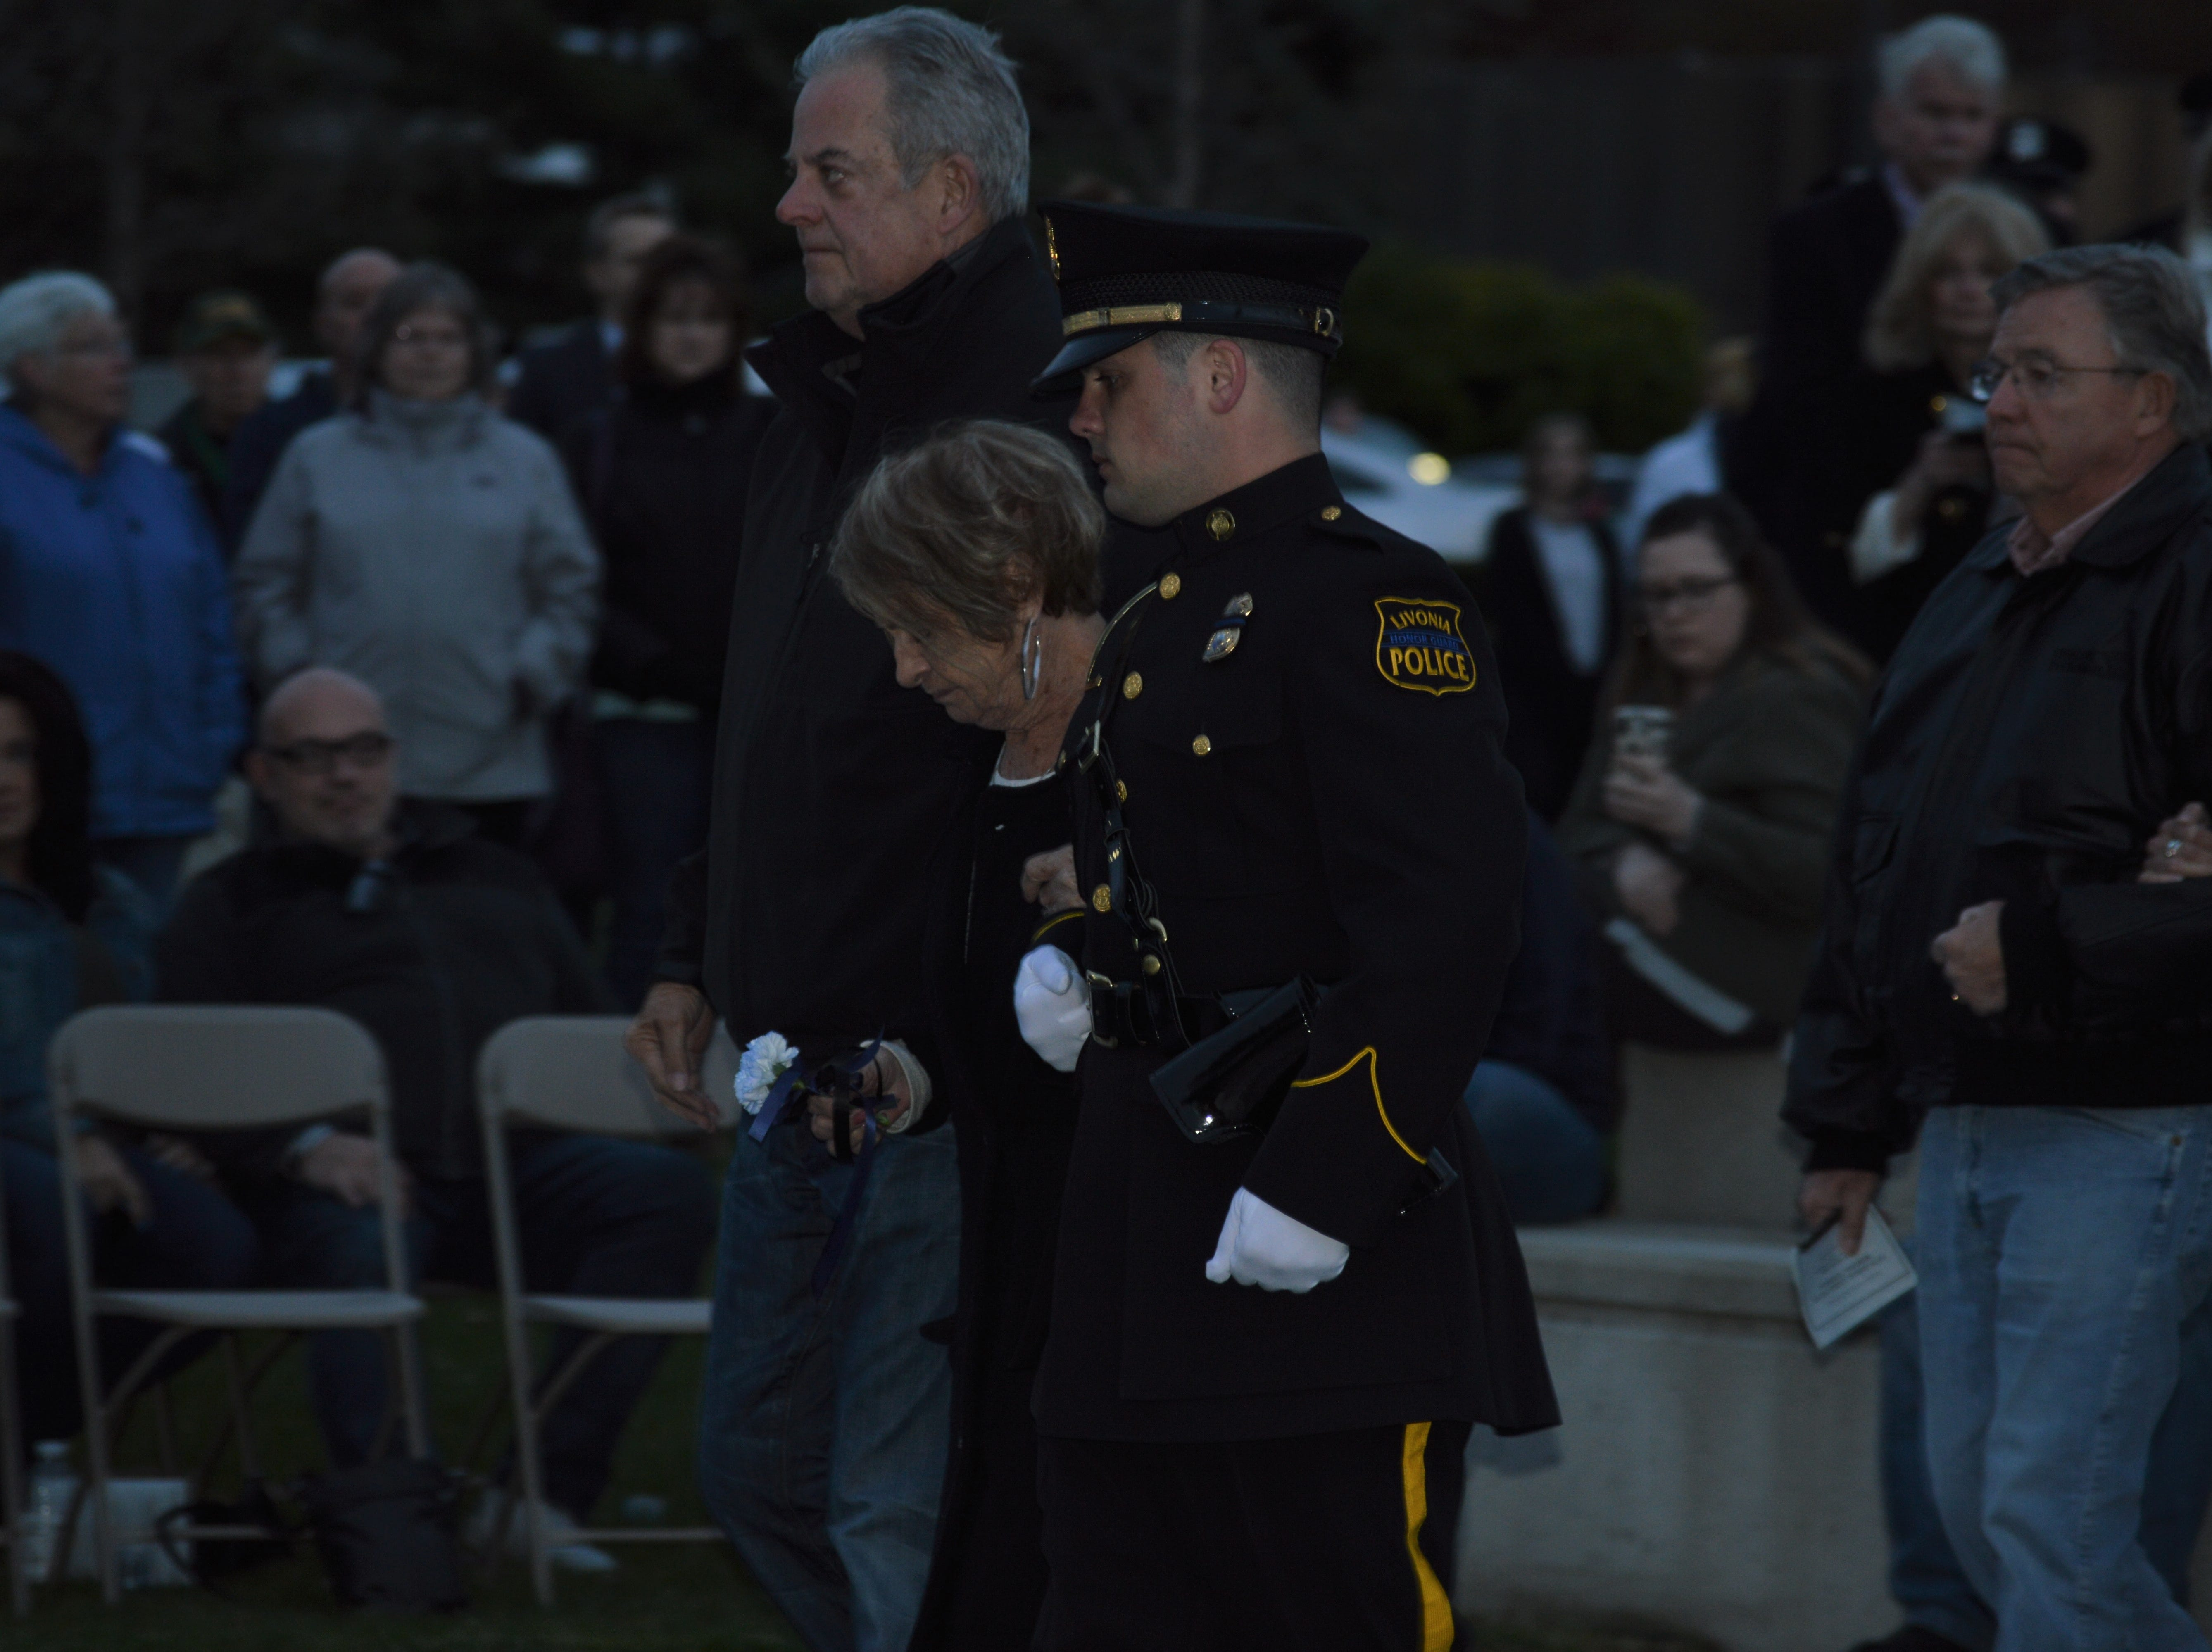 Rita Bryant was able to honor her deceased husband, a retired police officer who recently died, at the fifth annual Livonia Police Memorial Ceremony.